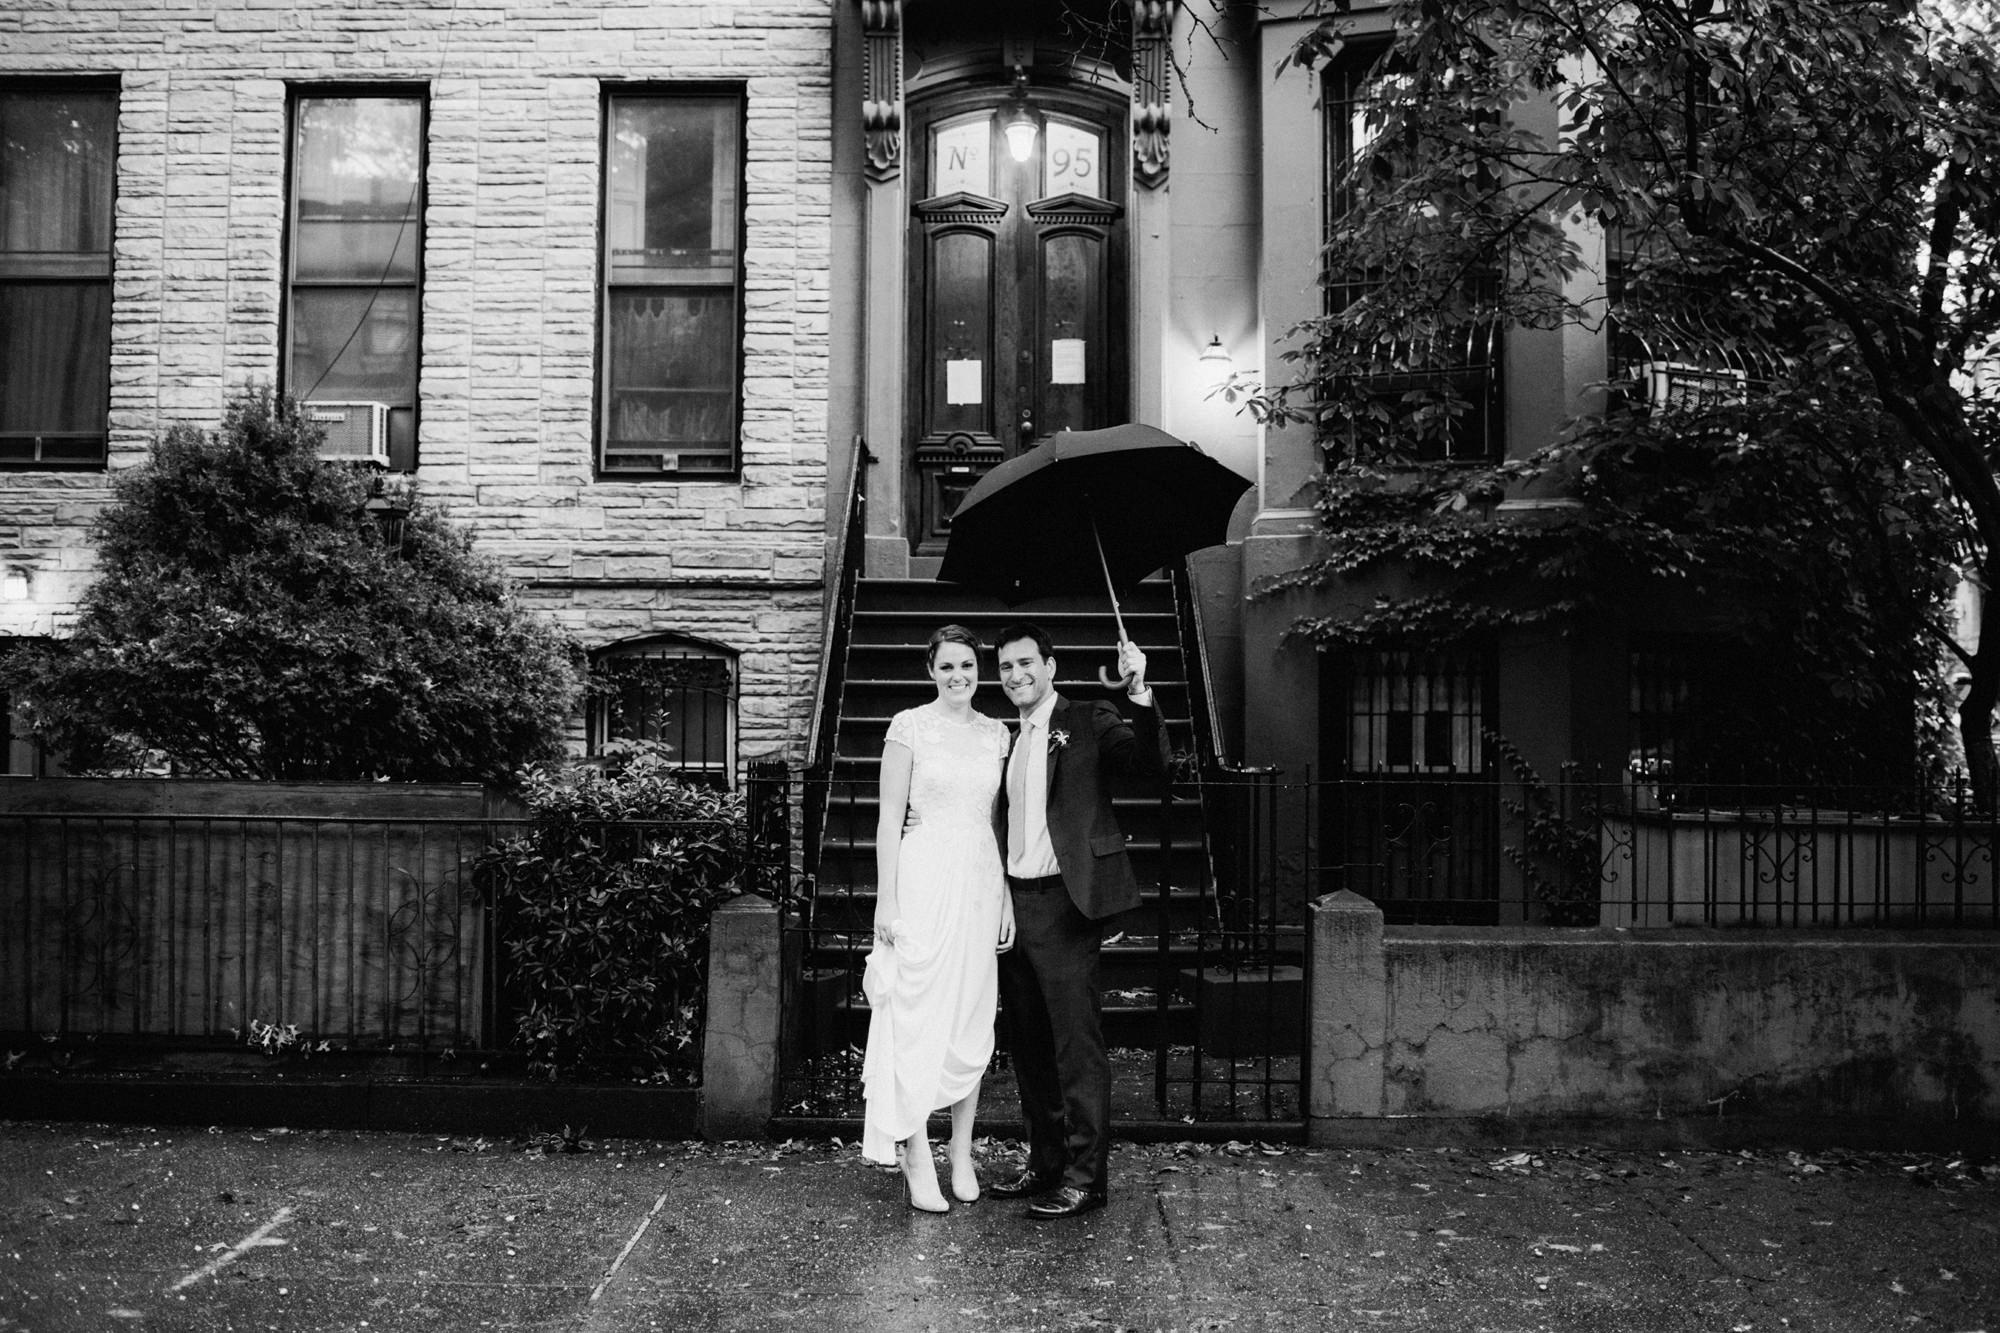 brooklyn_wedding_flatbushfarm_sammblake_018.jpg